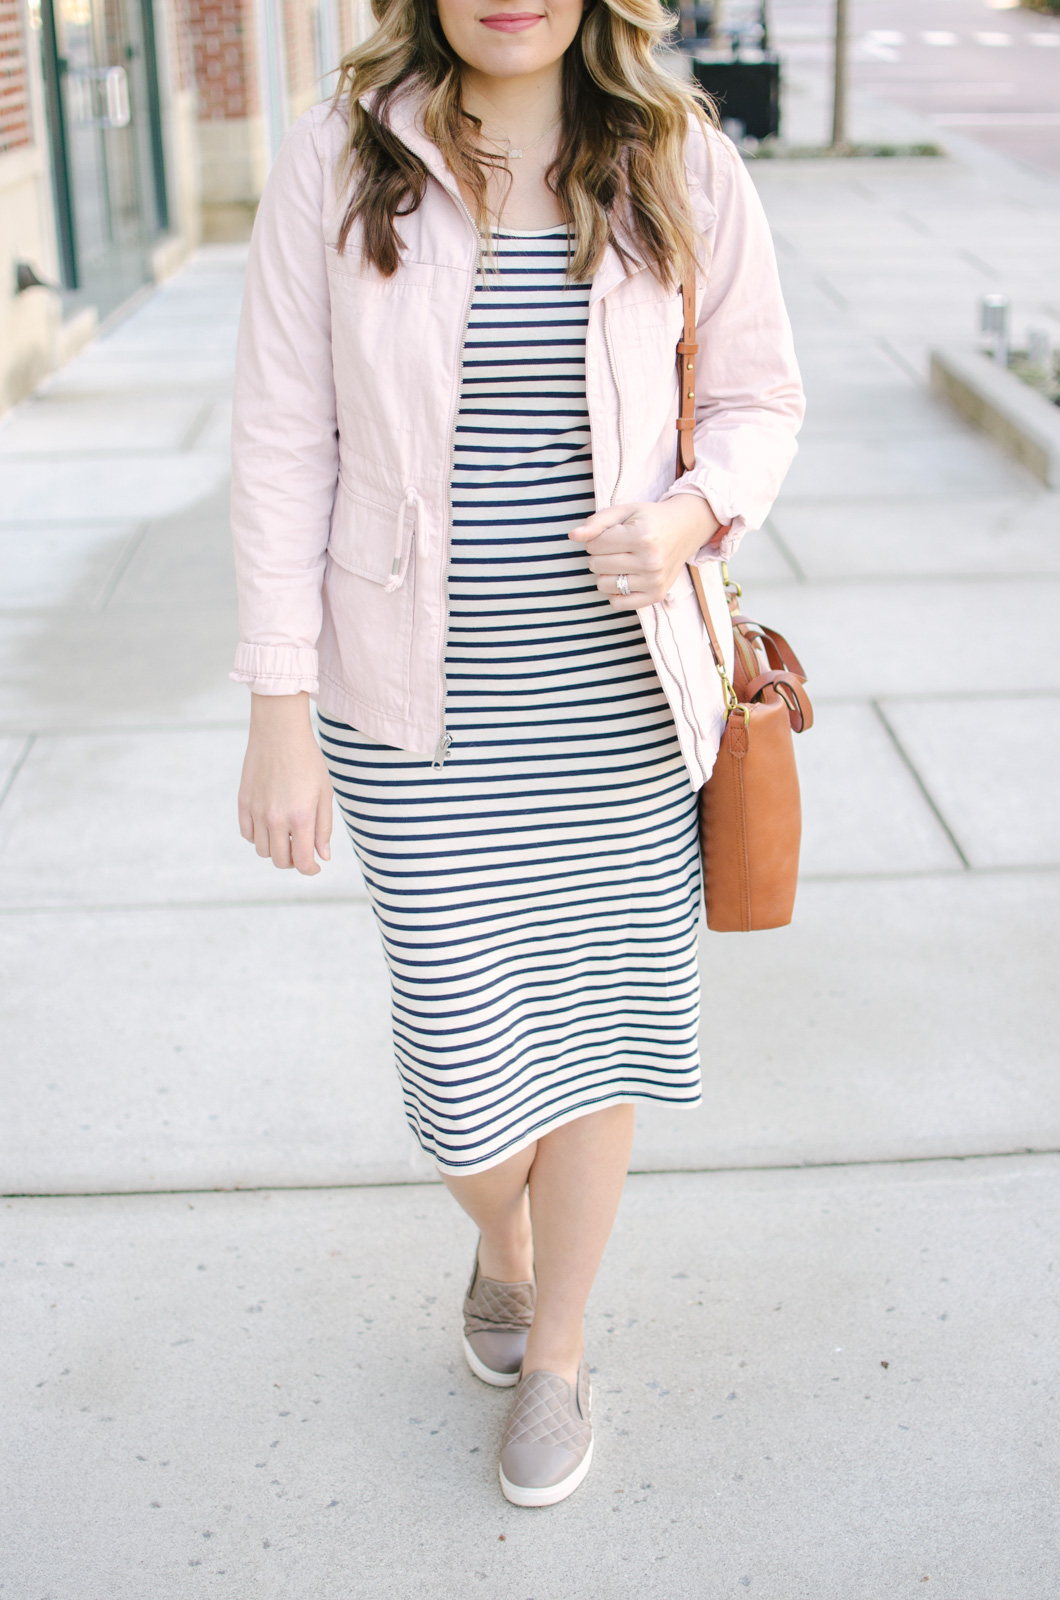 maternity style - two ways to wear a striped dress   Shop this look and see the other striped dress outfit at bylaurenm.com!